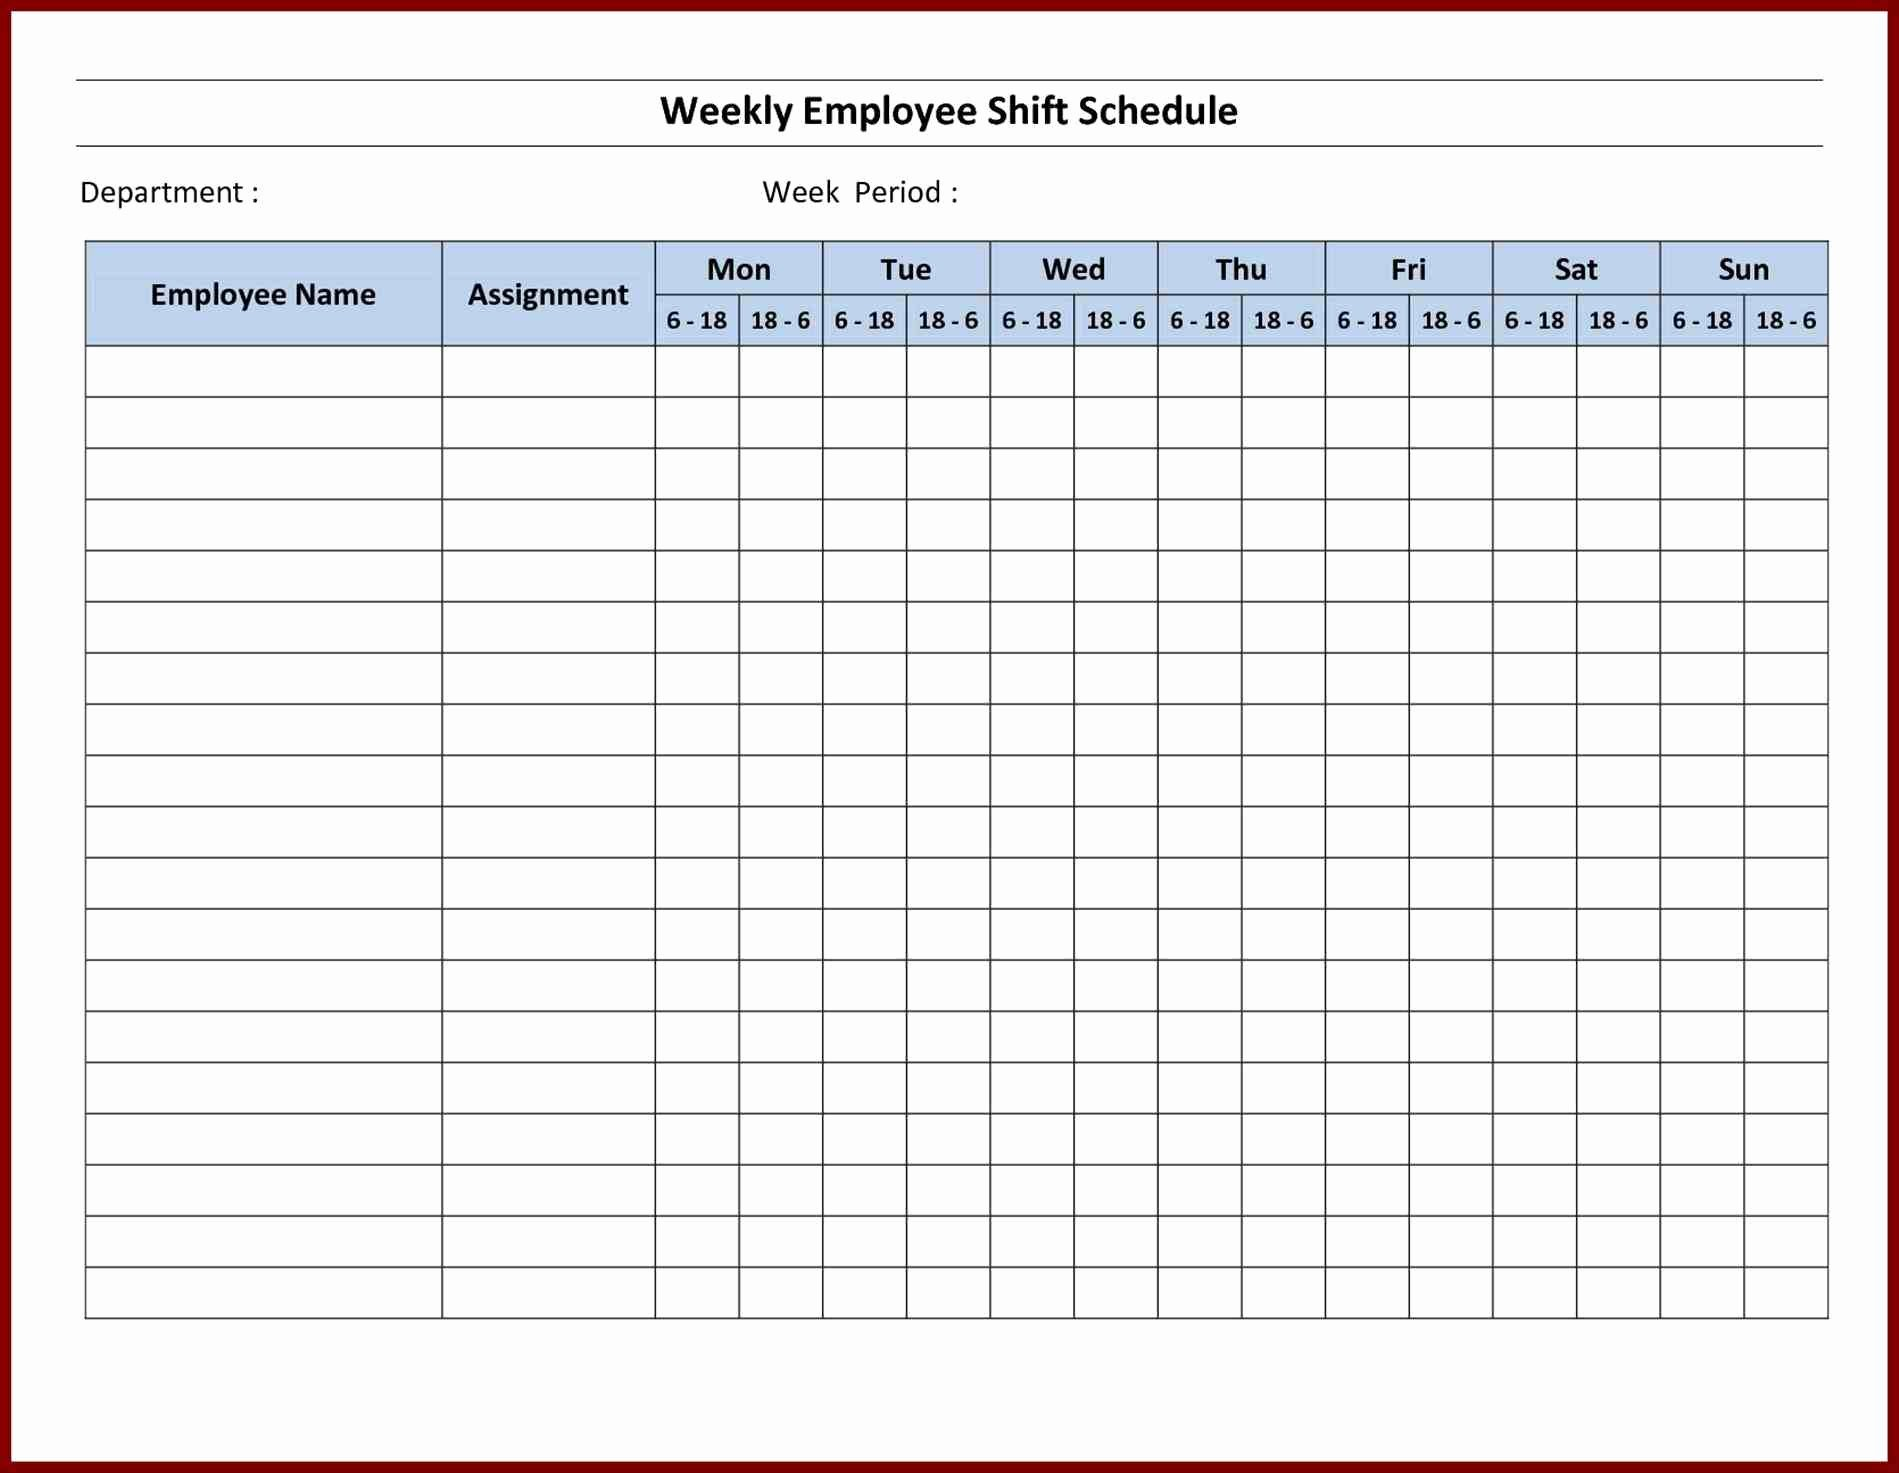 Employee Daily Work Schedule Template New Printable Schedule Maker 321d2e05d4f4c9cc5d7a1b F14cd